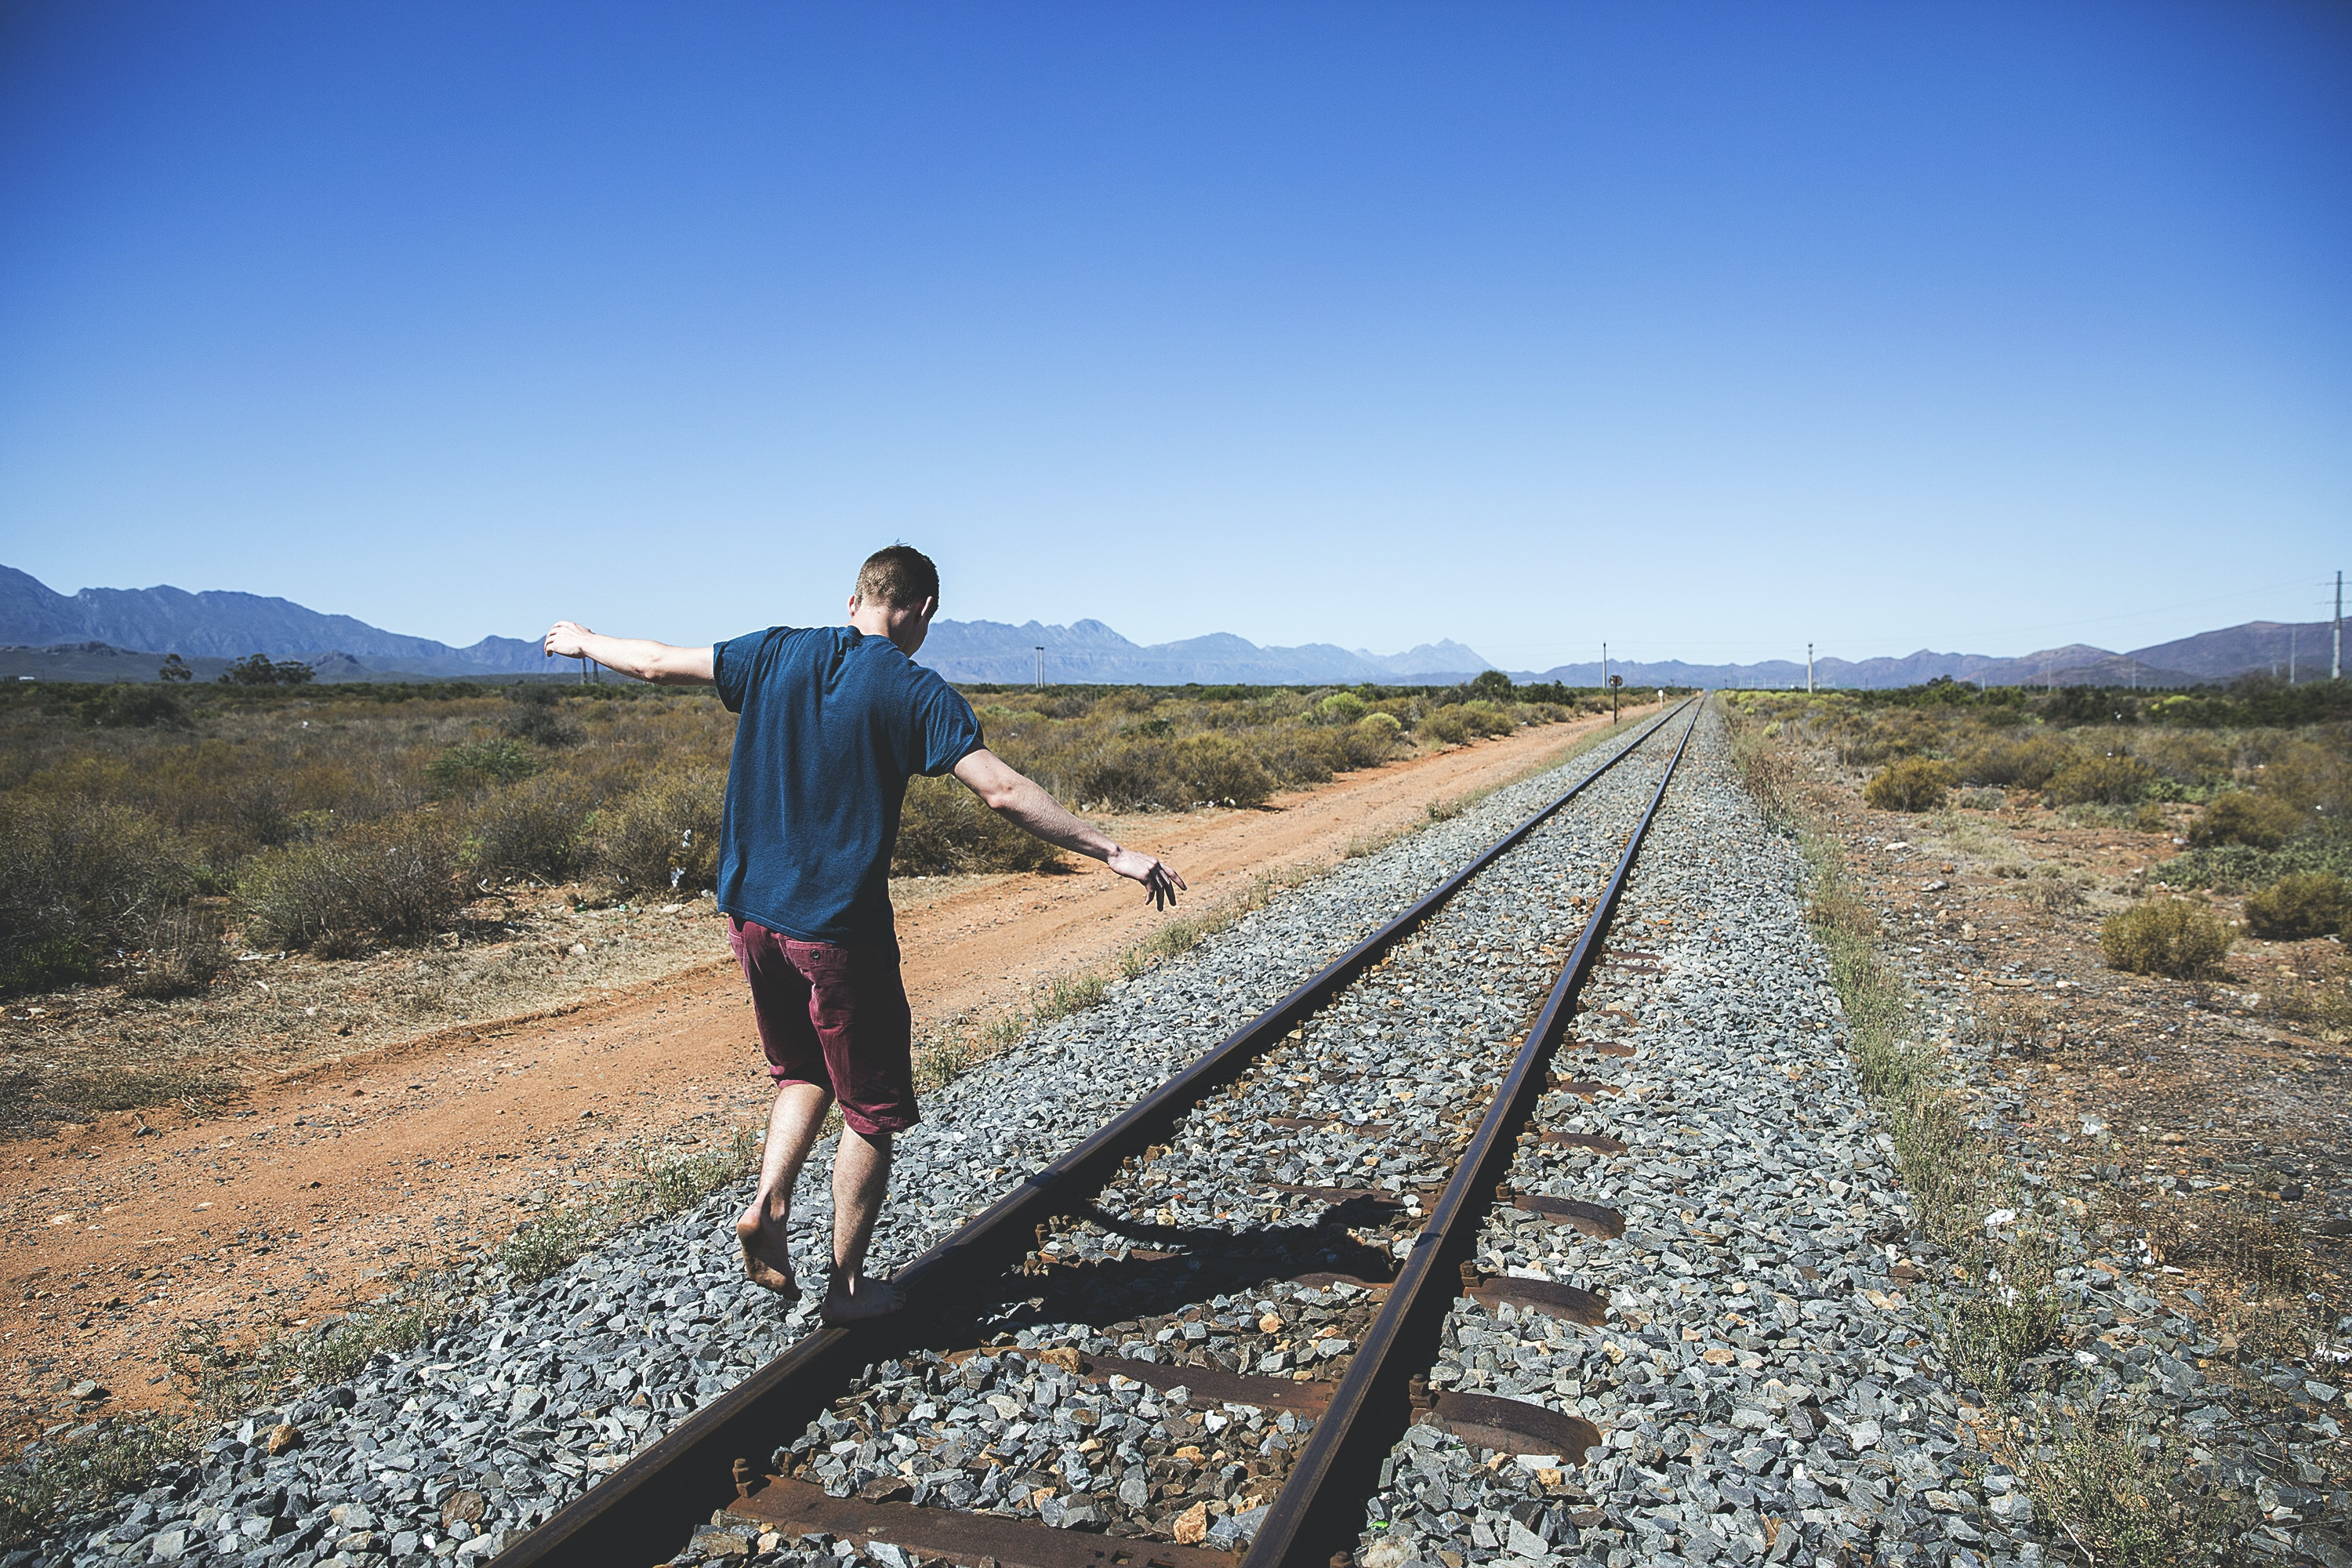 person walking on brown steel train rail outdoor during daytime